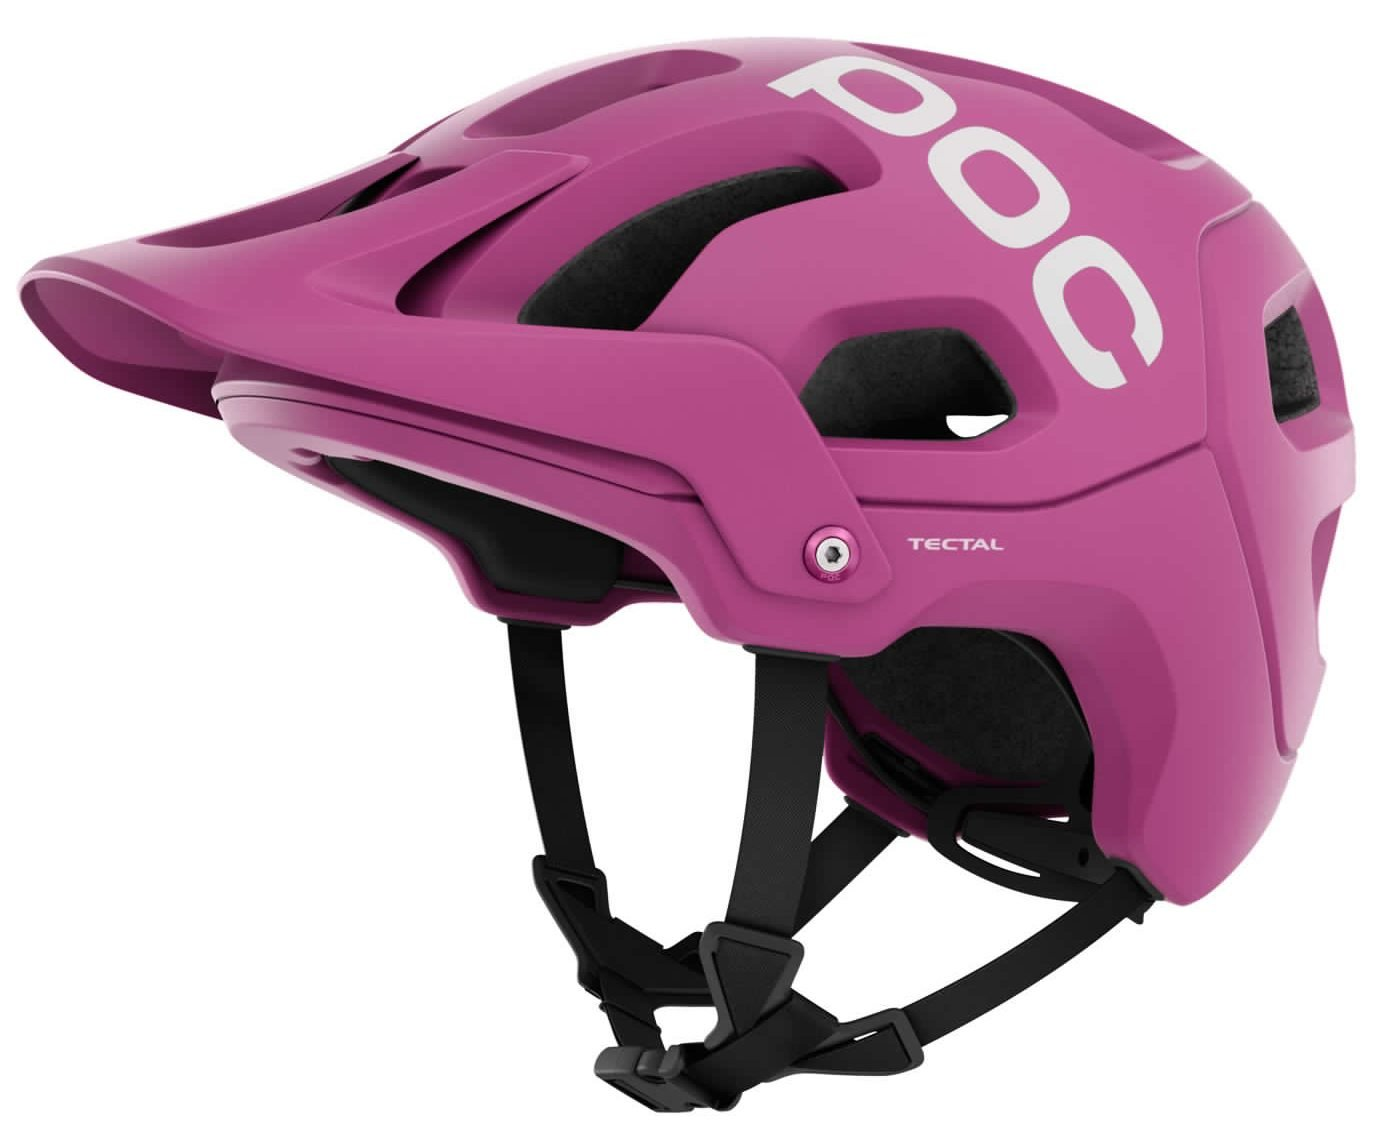 POC Tectal Mountain Bike Helmet